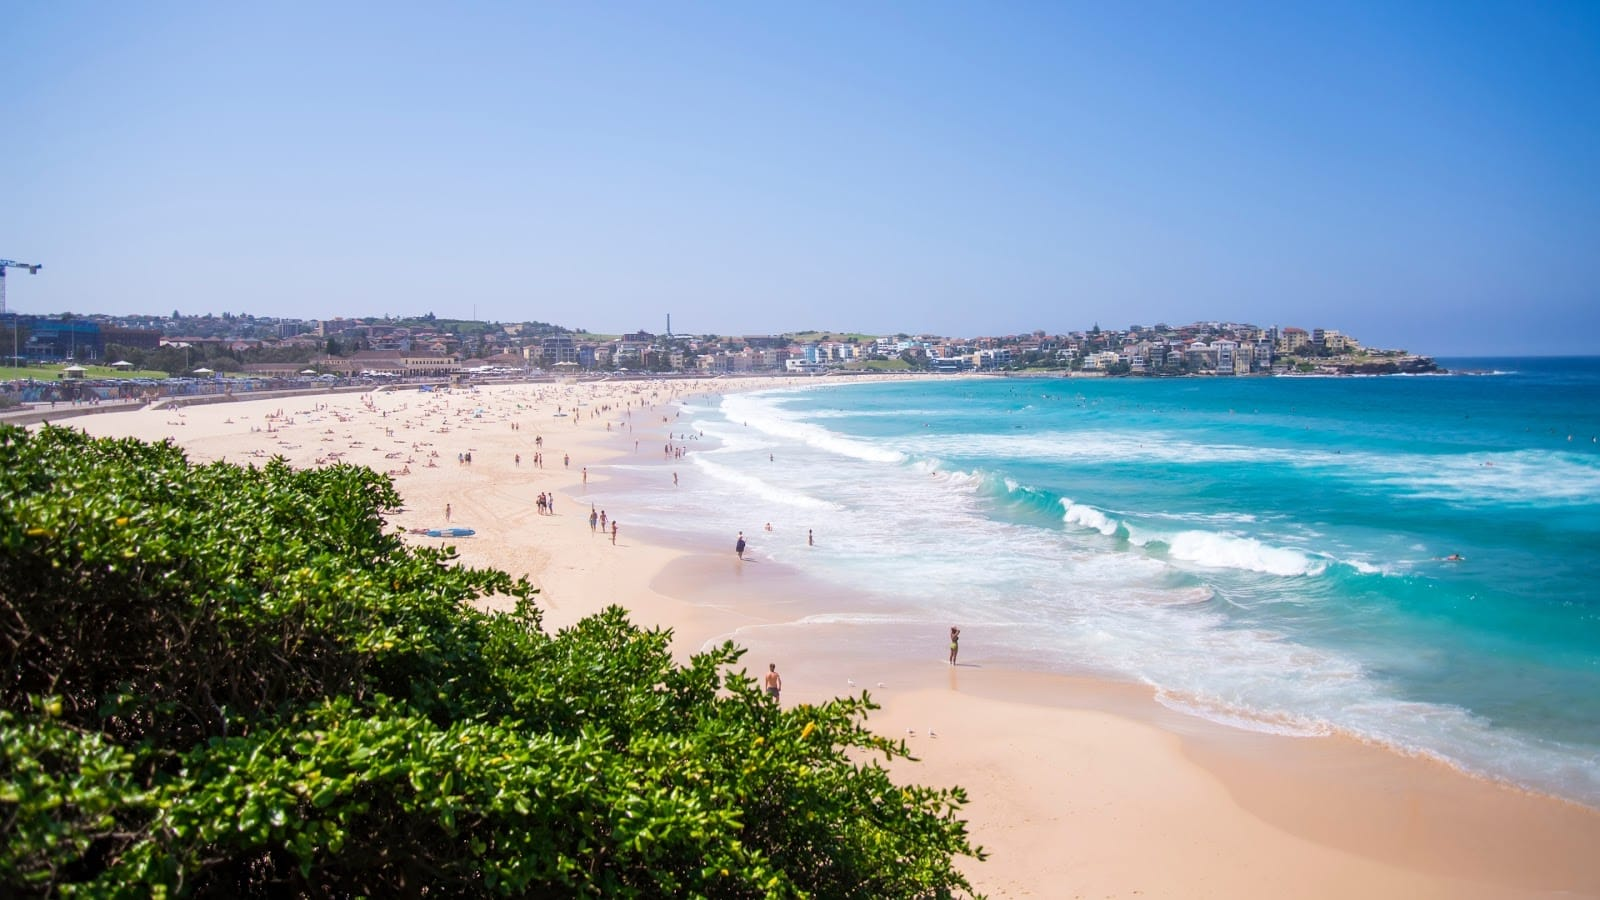 Beaches are a top consideration when choosing to move to Australia